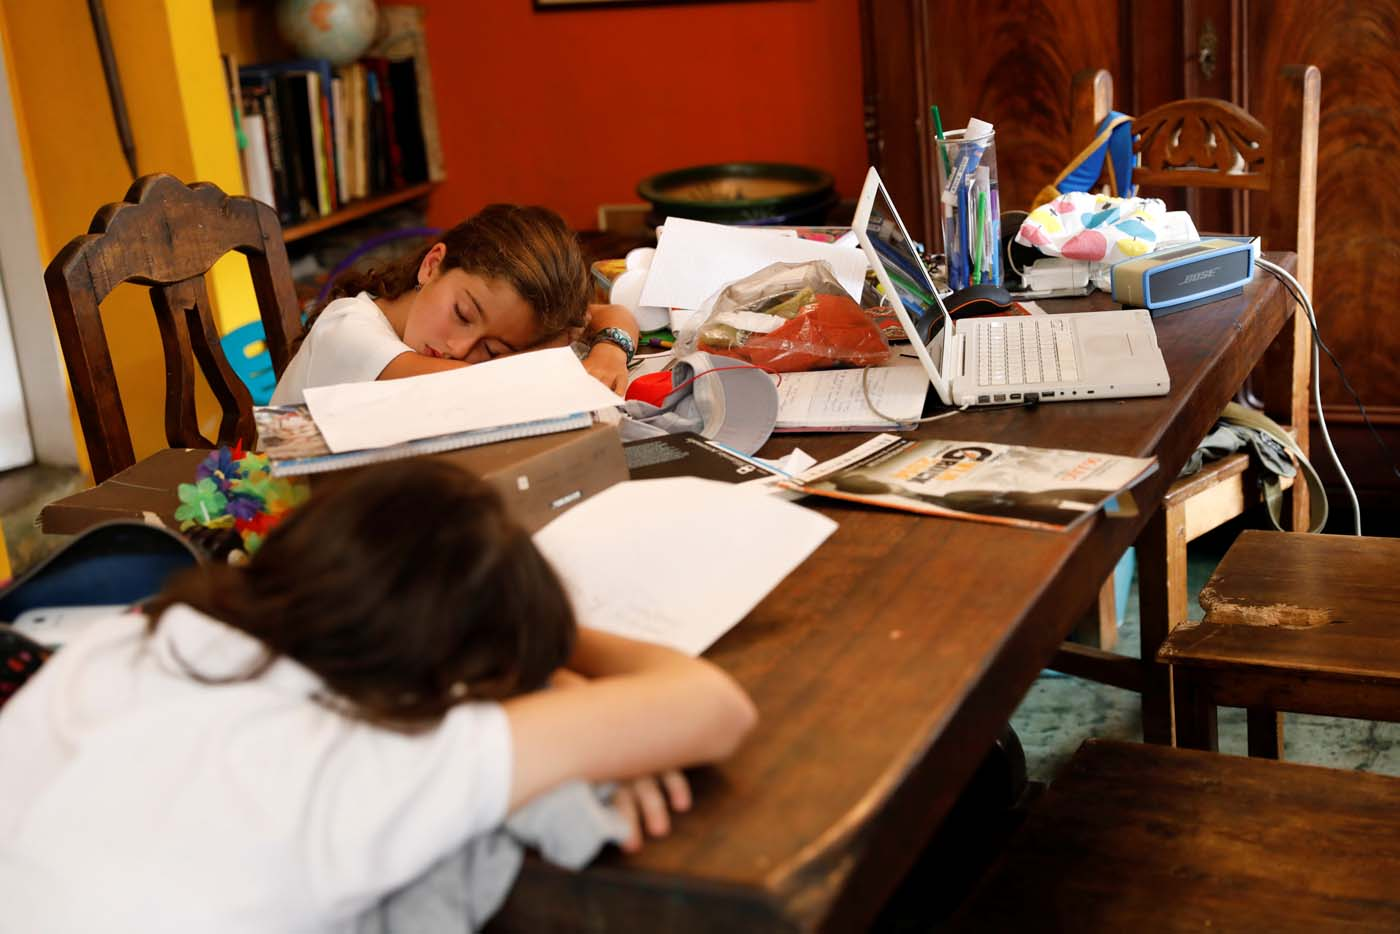 Carlota Valenzuela (L) and her sister Eloisa Toro, fall asleep on the table after arriving from school on a day of protests in Caracas, Venezuela June 7, 2017. Picture taken June 7, 2017. REUTERS/Carlos Garcia Rawlins